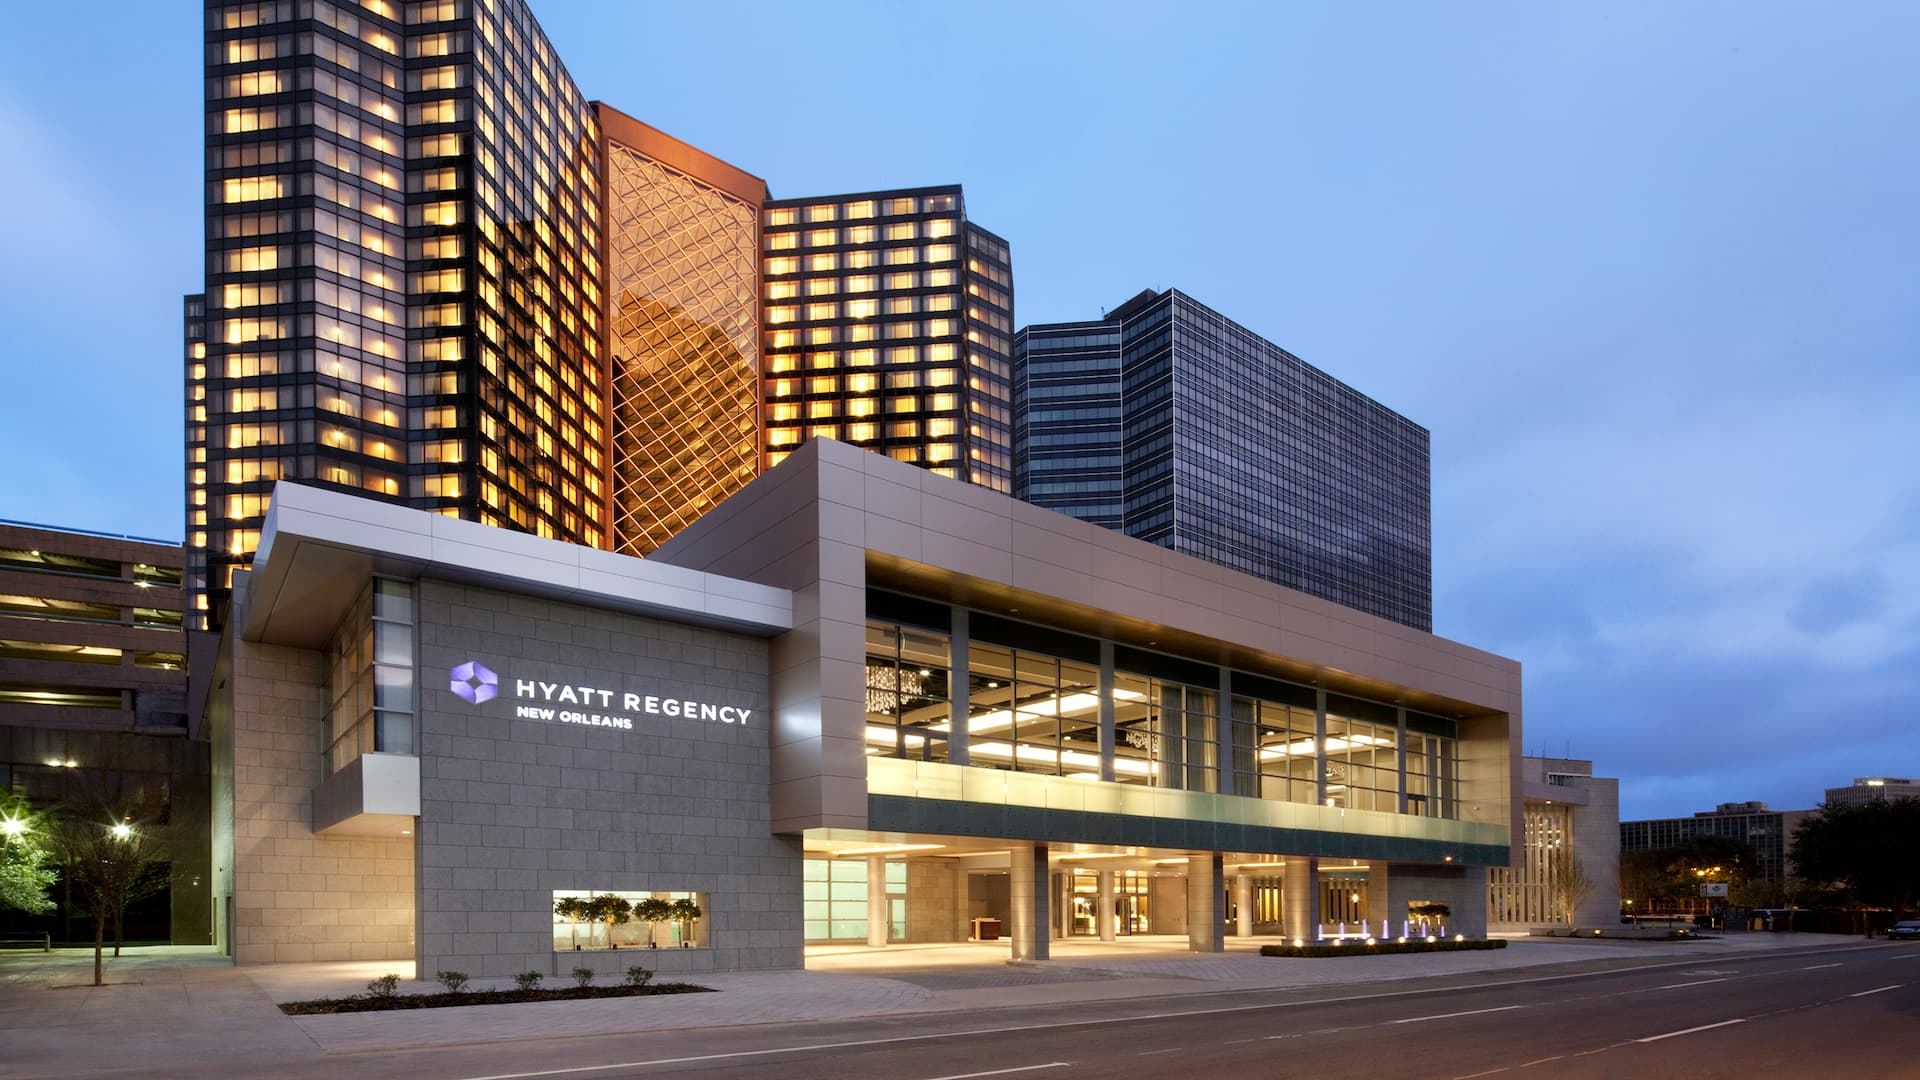 Exterior view of the Hyatt Regency New Orleans building in downtown New Orleans